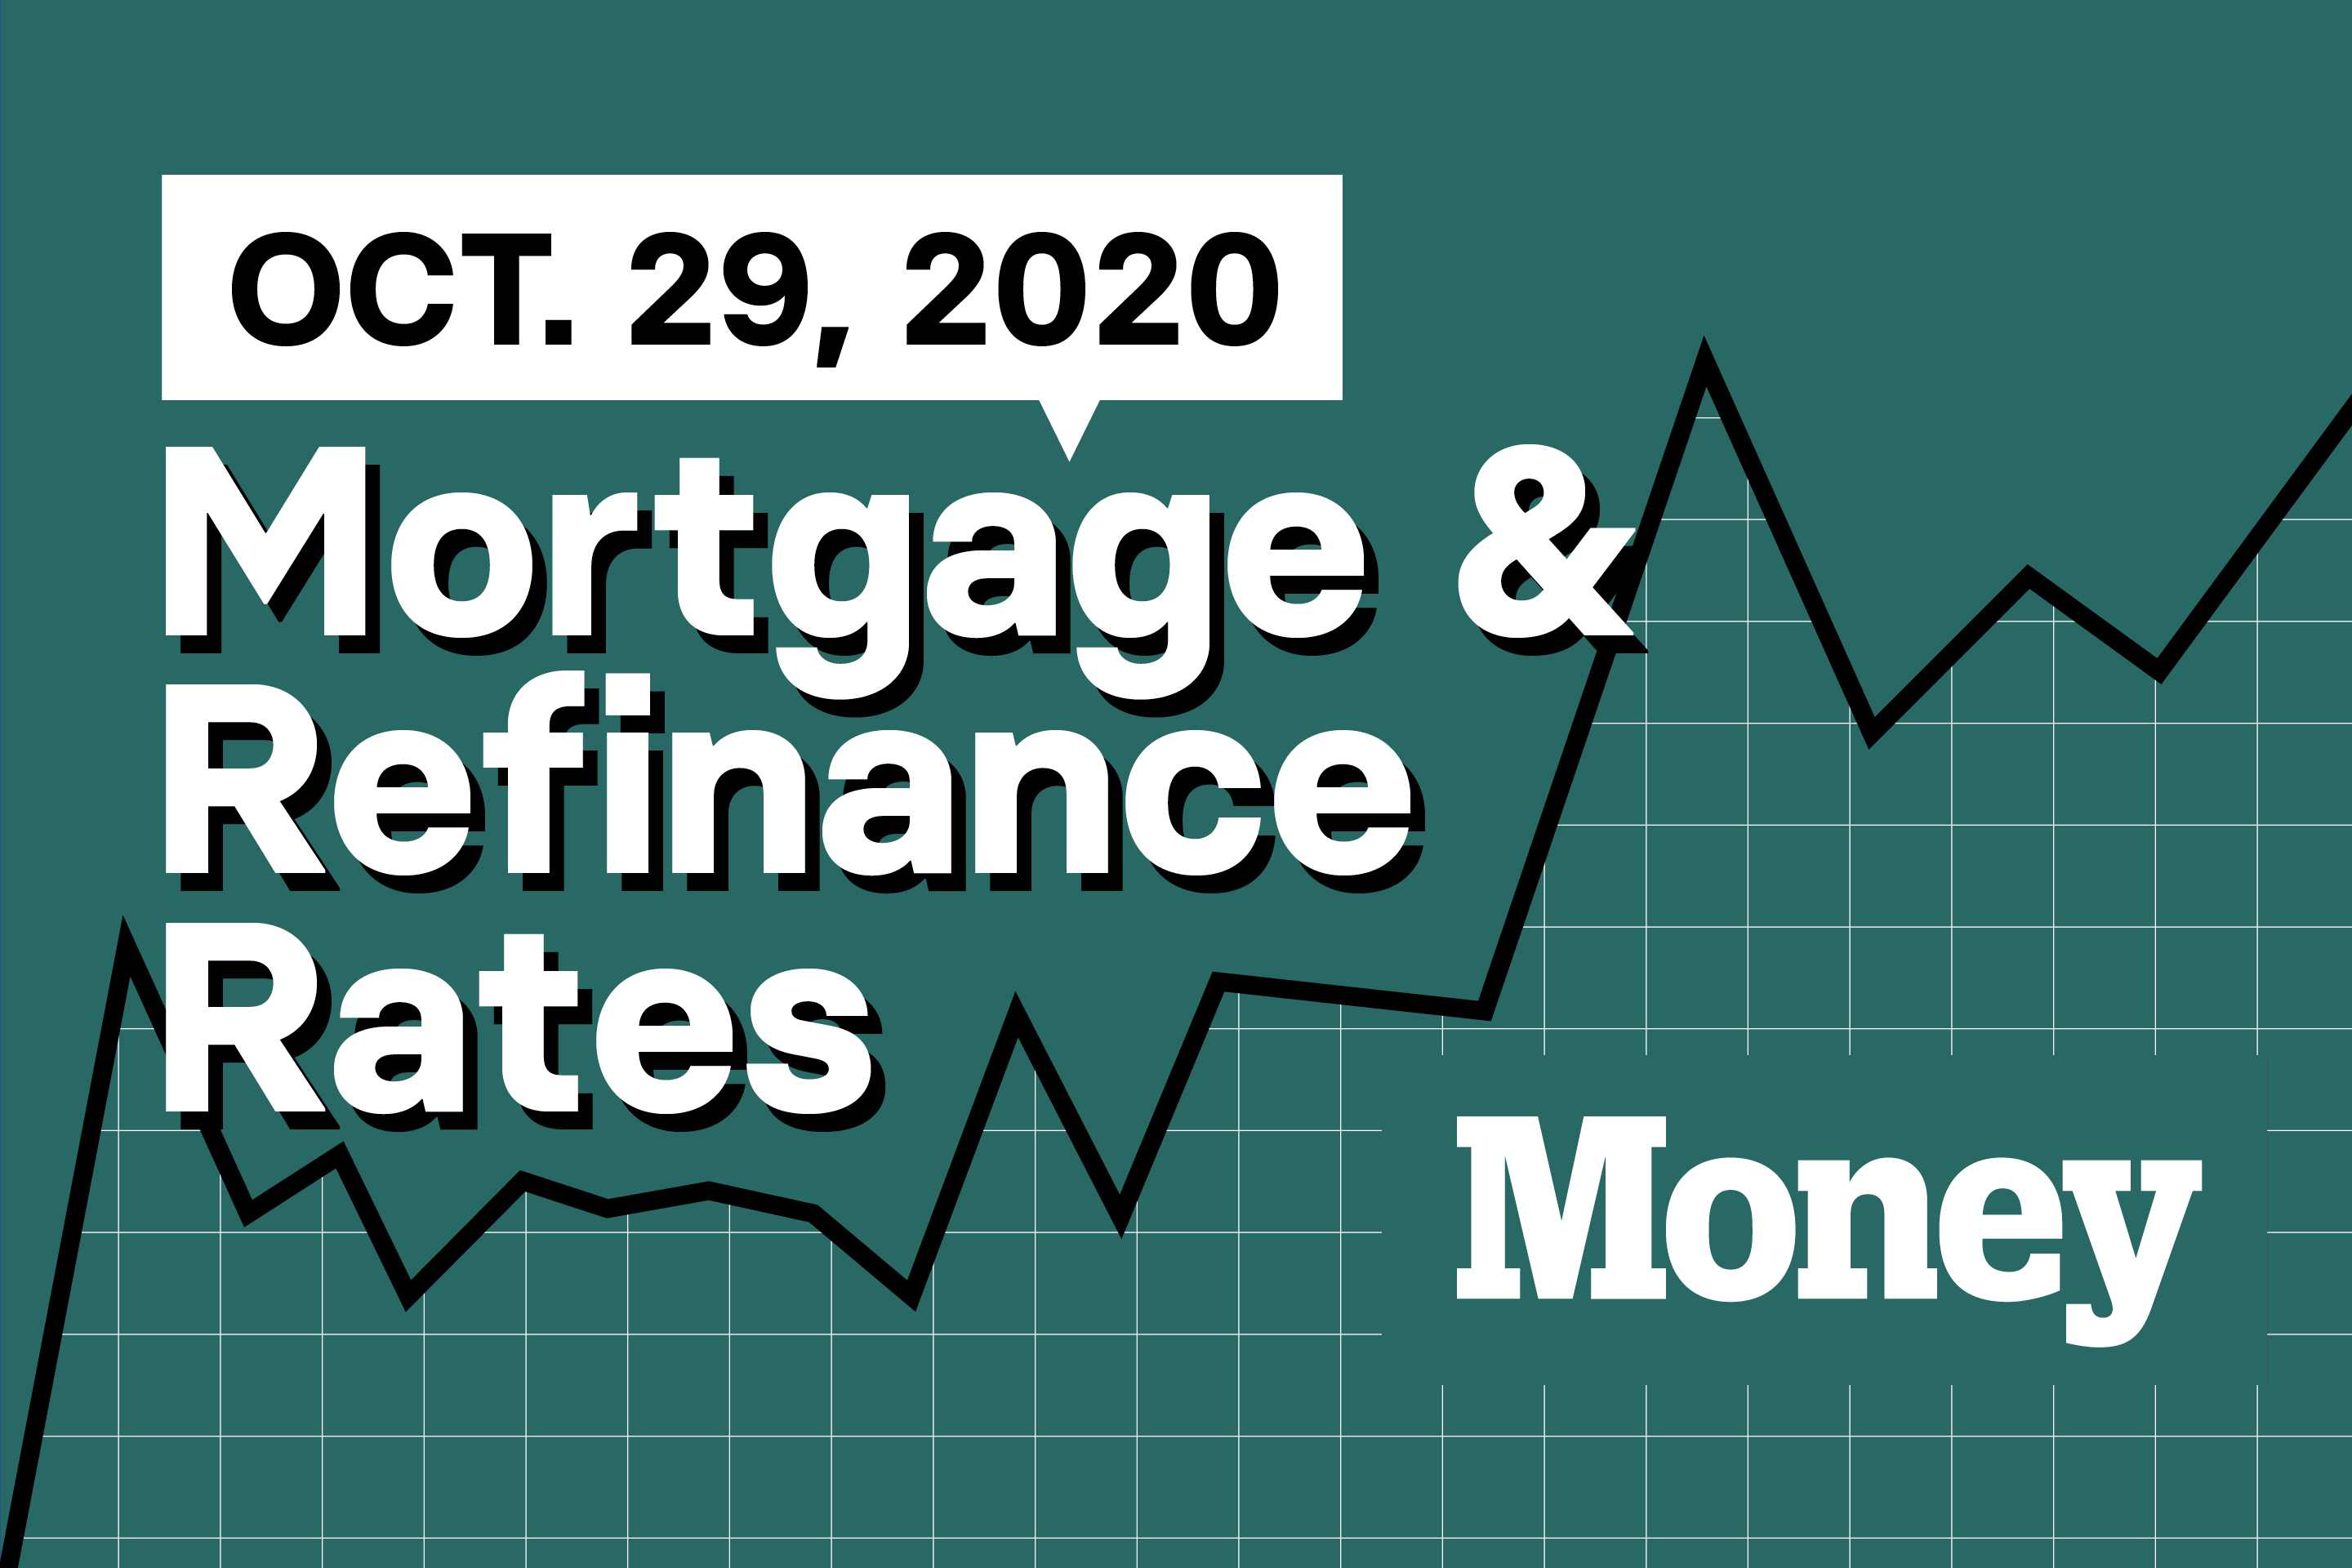 Here Are Today's Best Mortgage & Refinance Rates for October 29, 2020